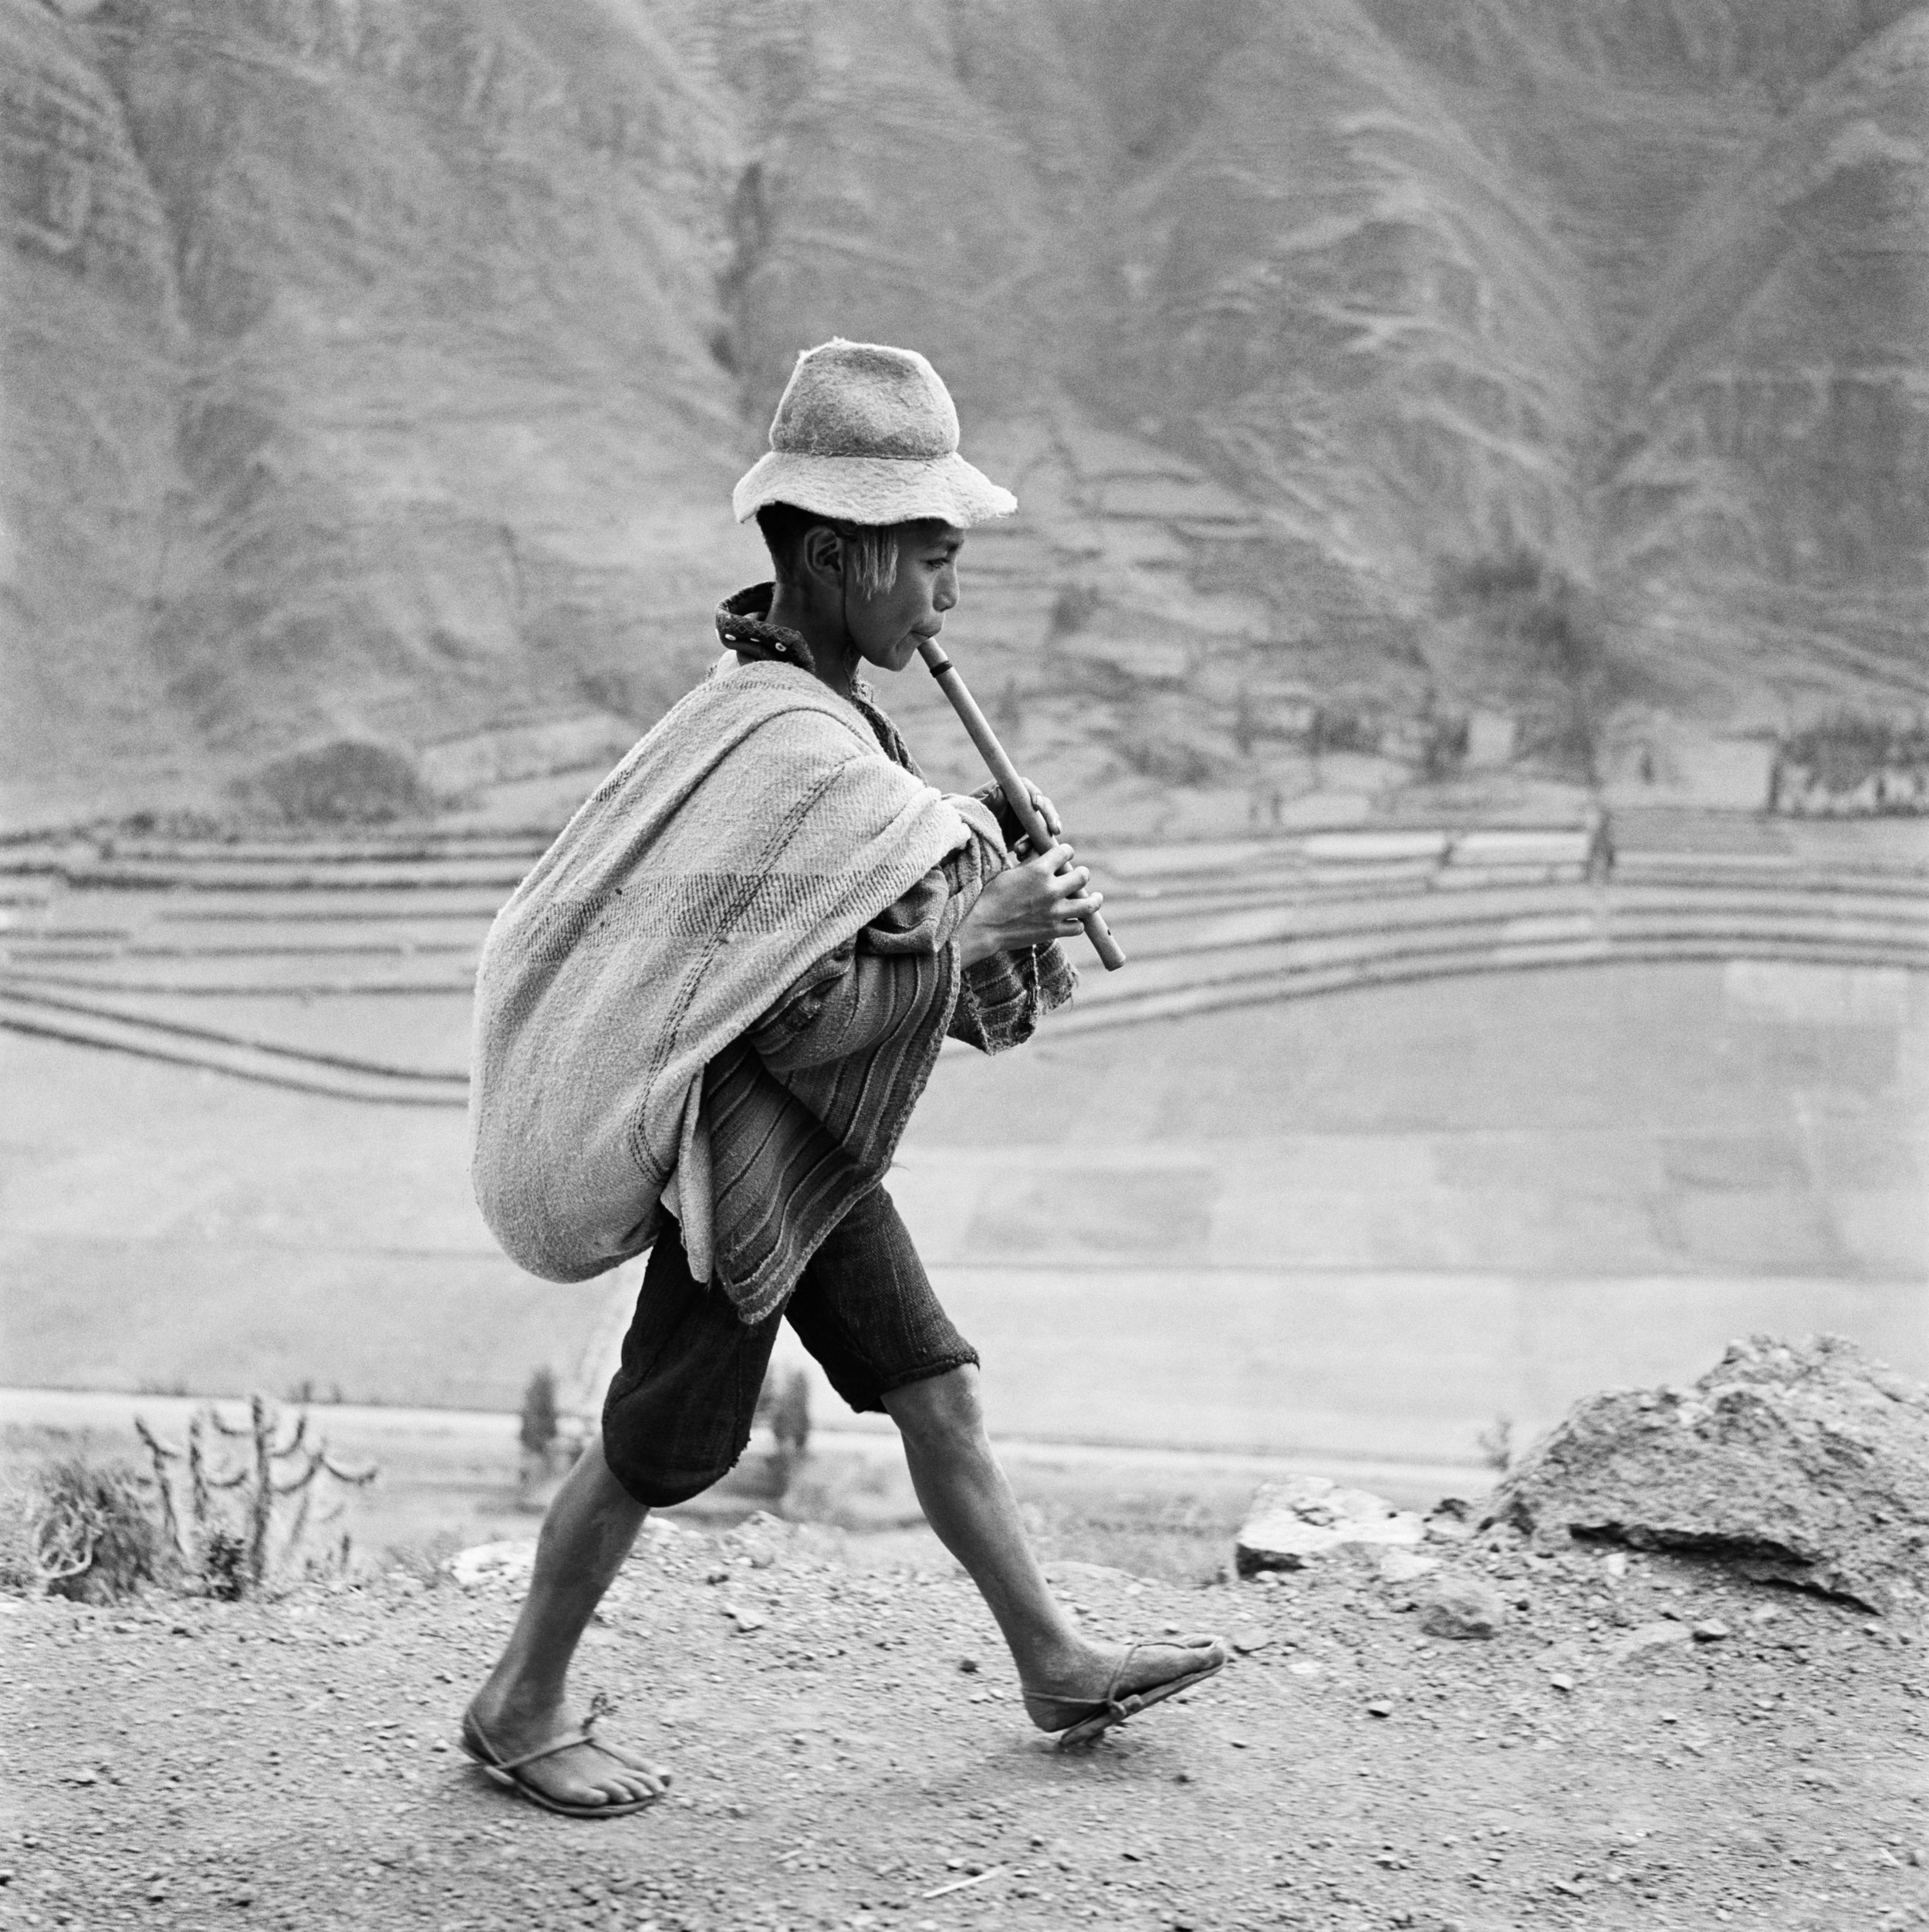 On the road to Cuzco, near Pisac, Peru, May 1954 © Werner Bischof | Magnum Photos